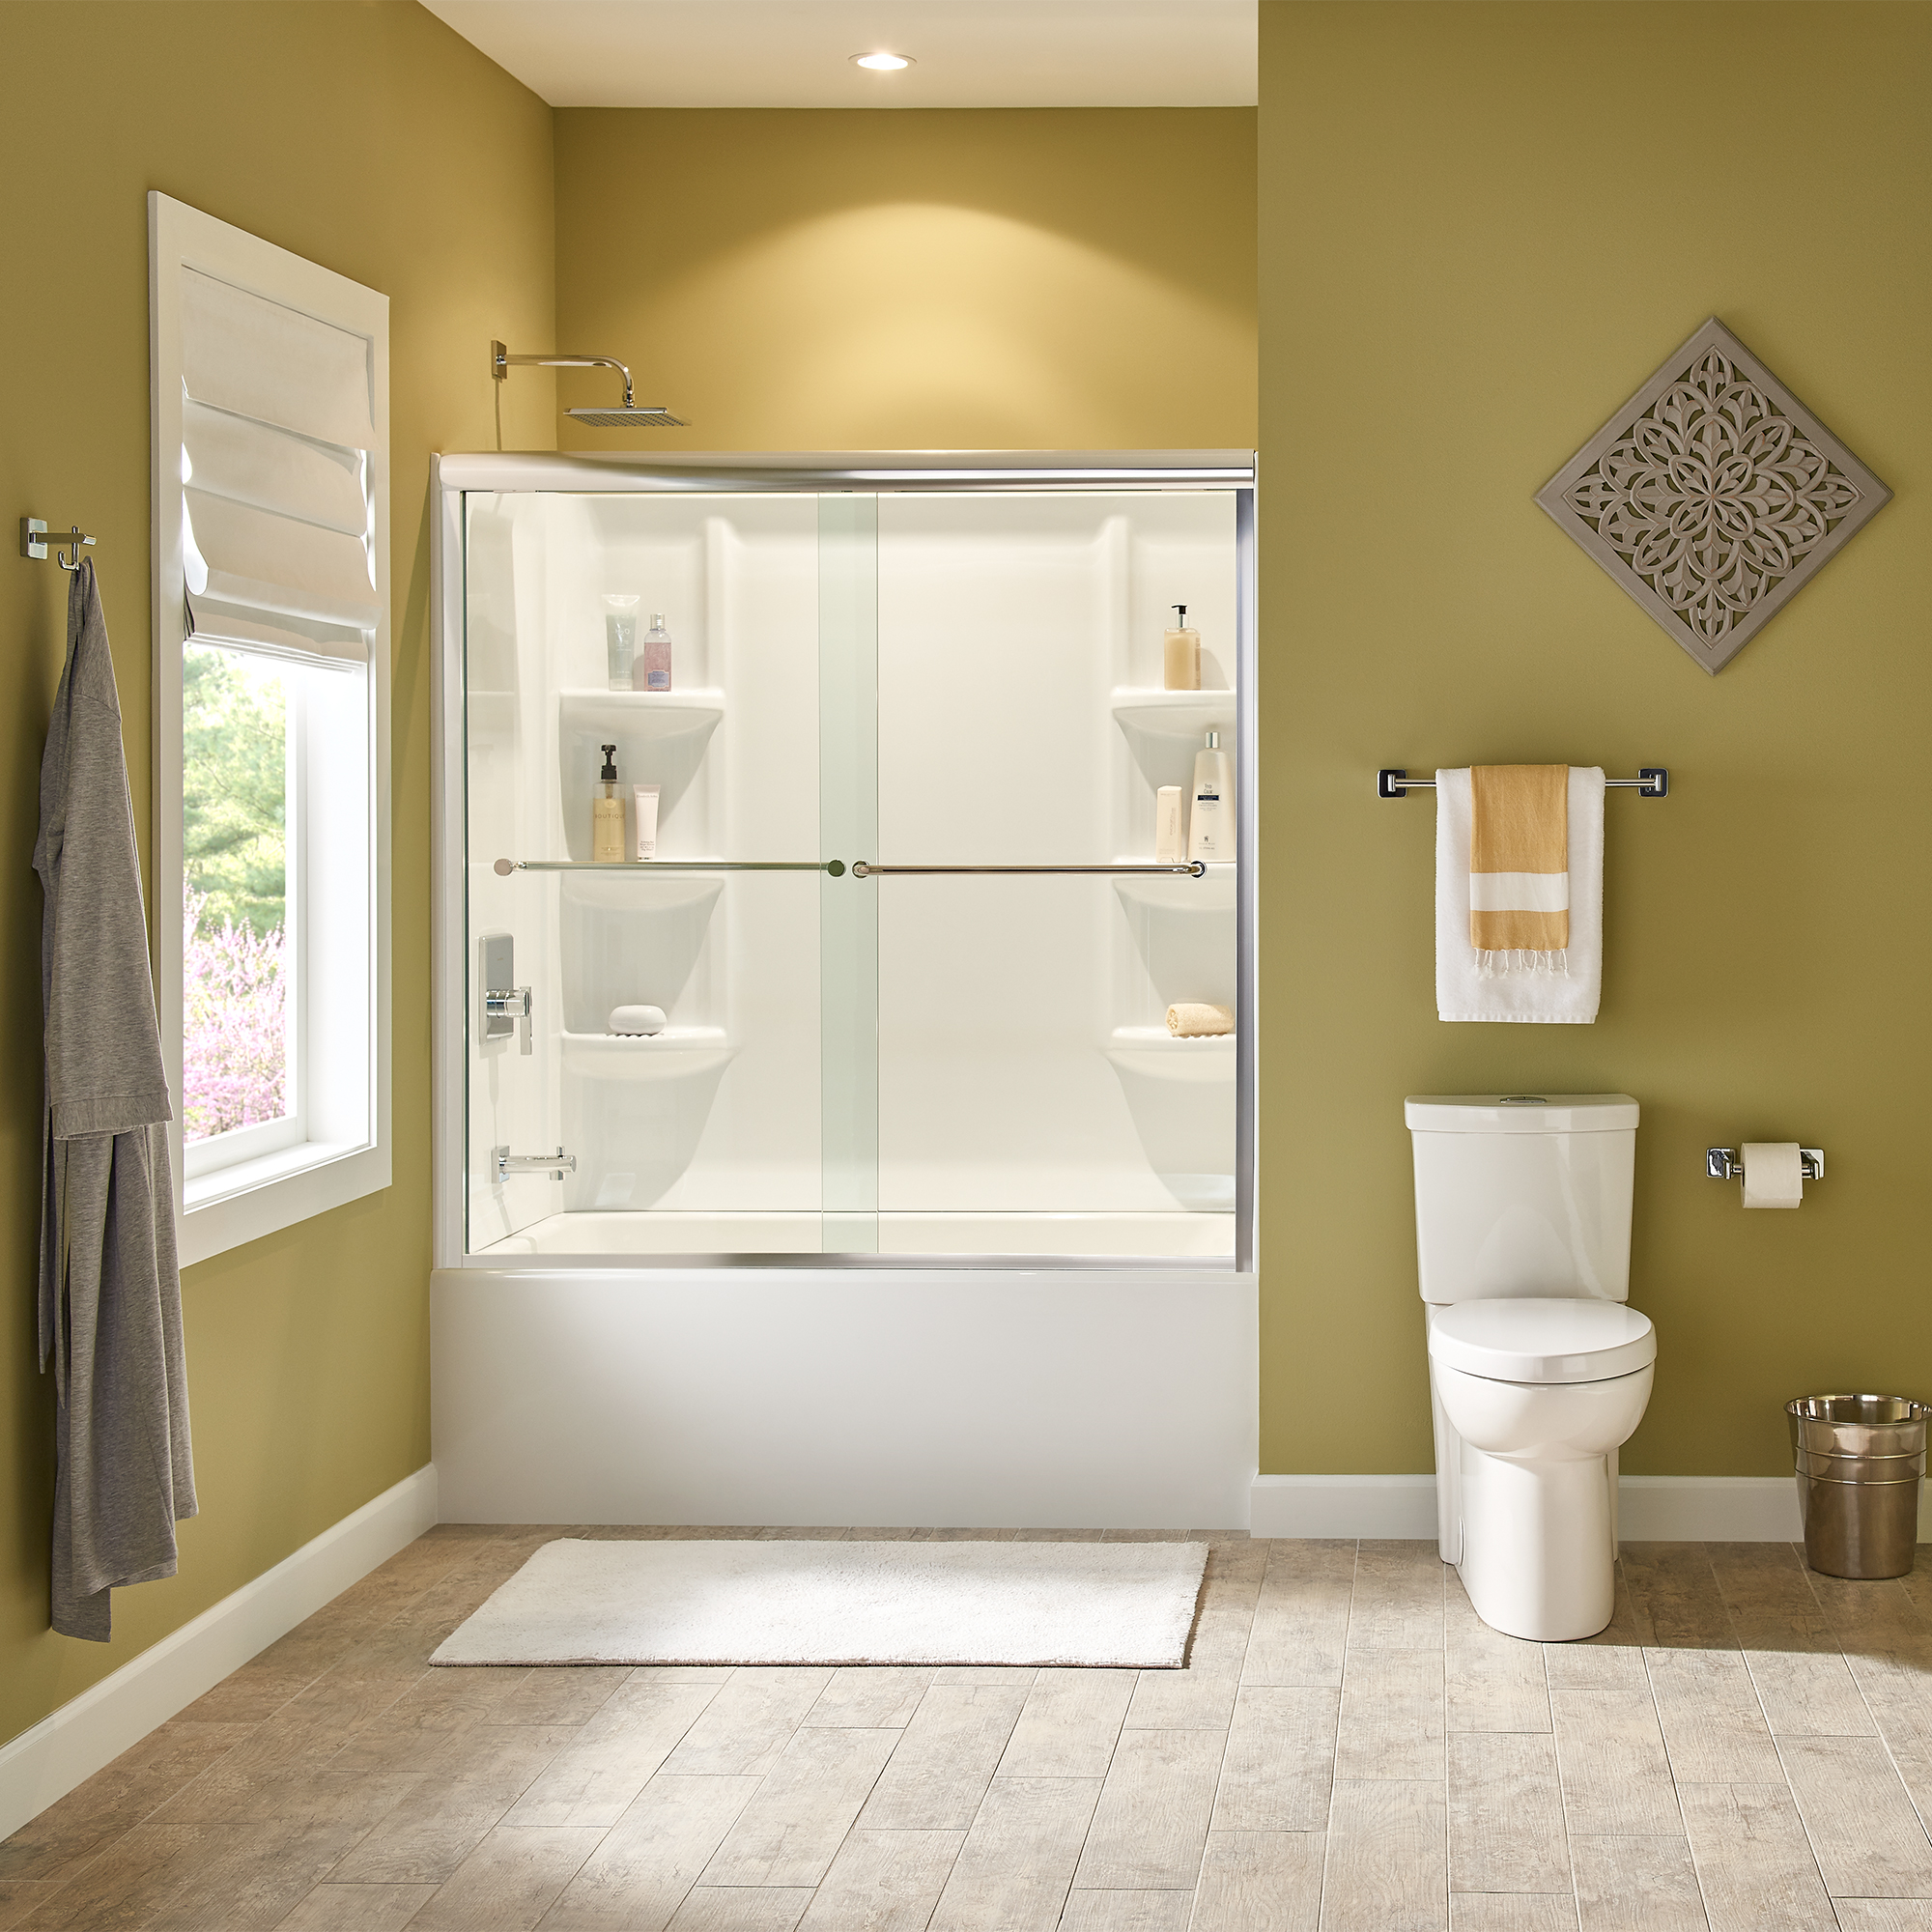 Emphasize Your Bathroom Look With Designer Taps And Shower Head